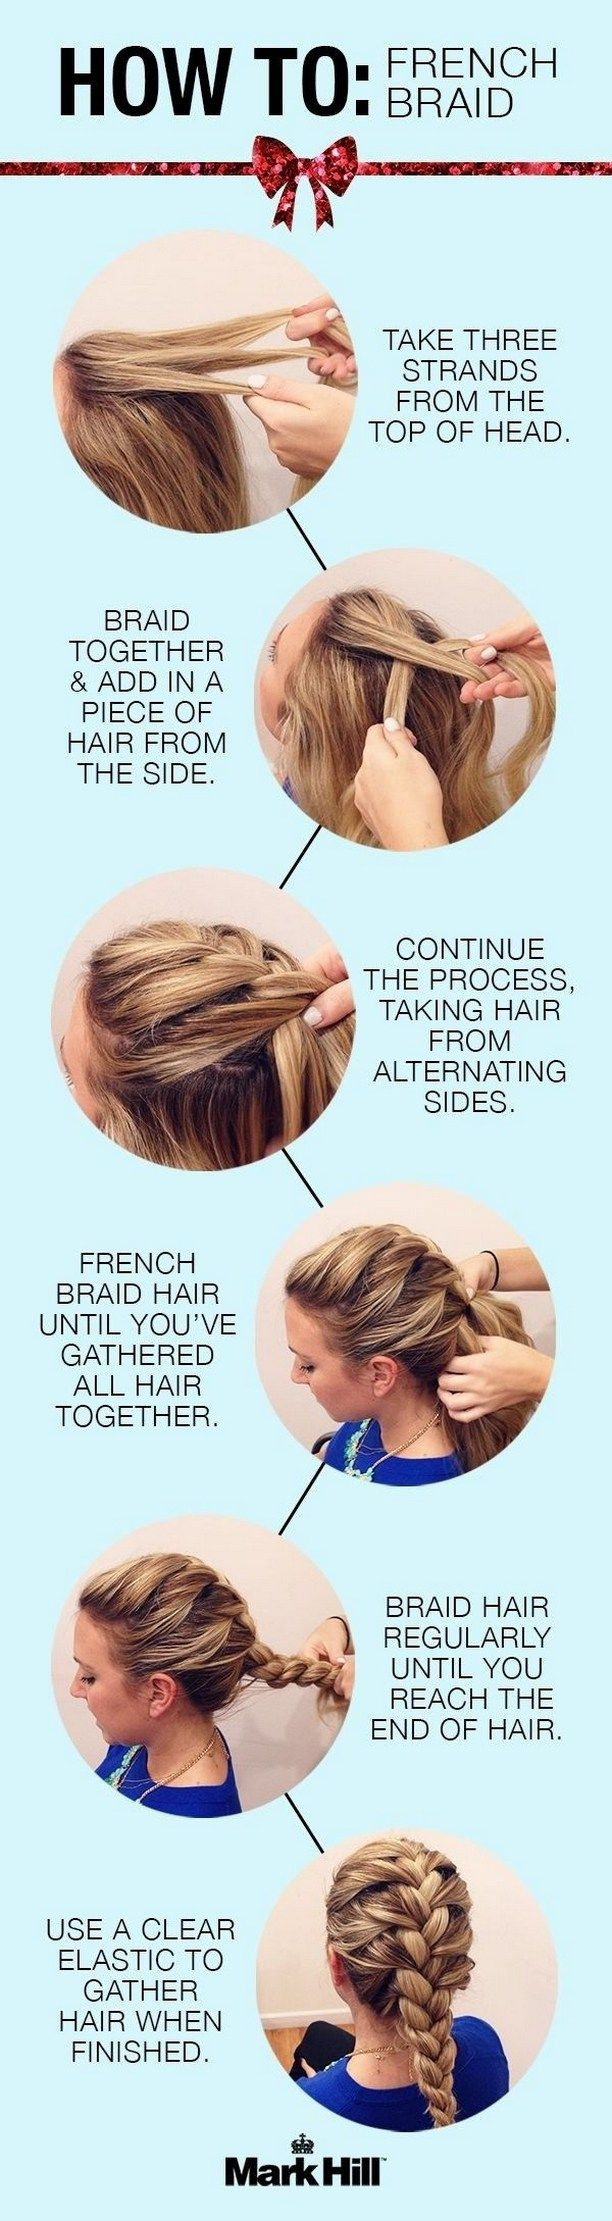 100 charming braided hairstyles ideas for medium hair (22)